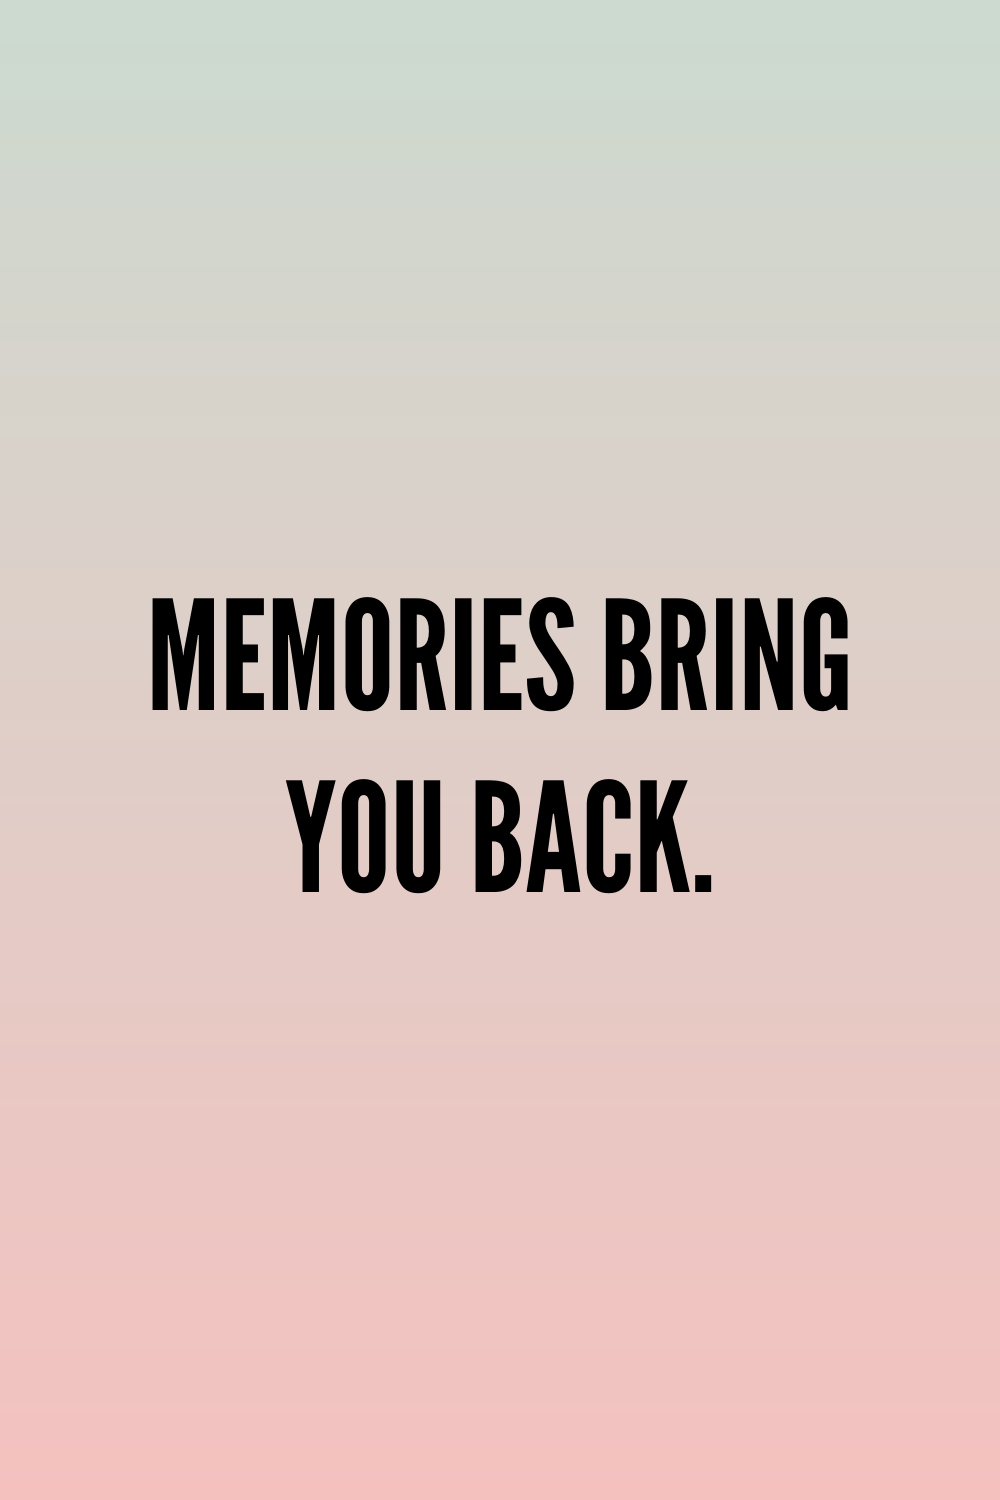 Memories Bring You Back Self Healing Quotes Grieving Quotes Quotes